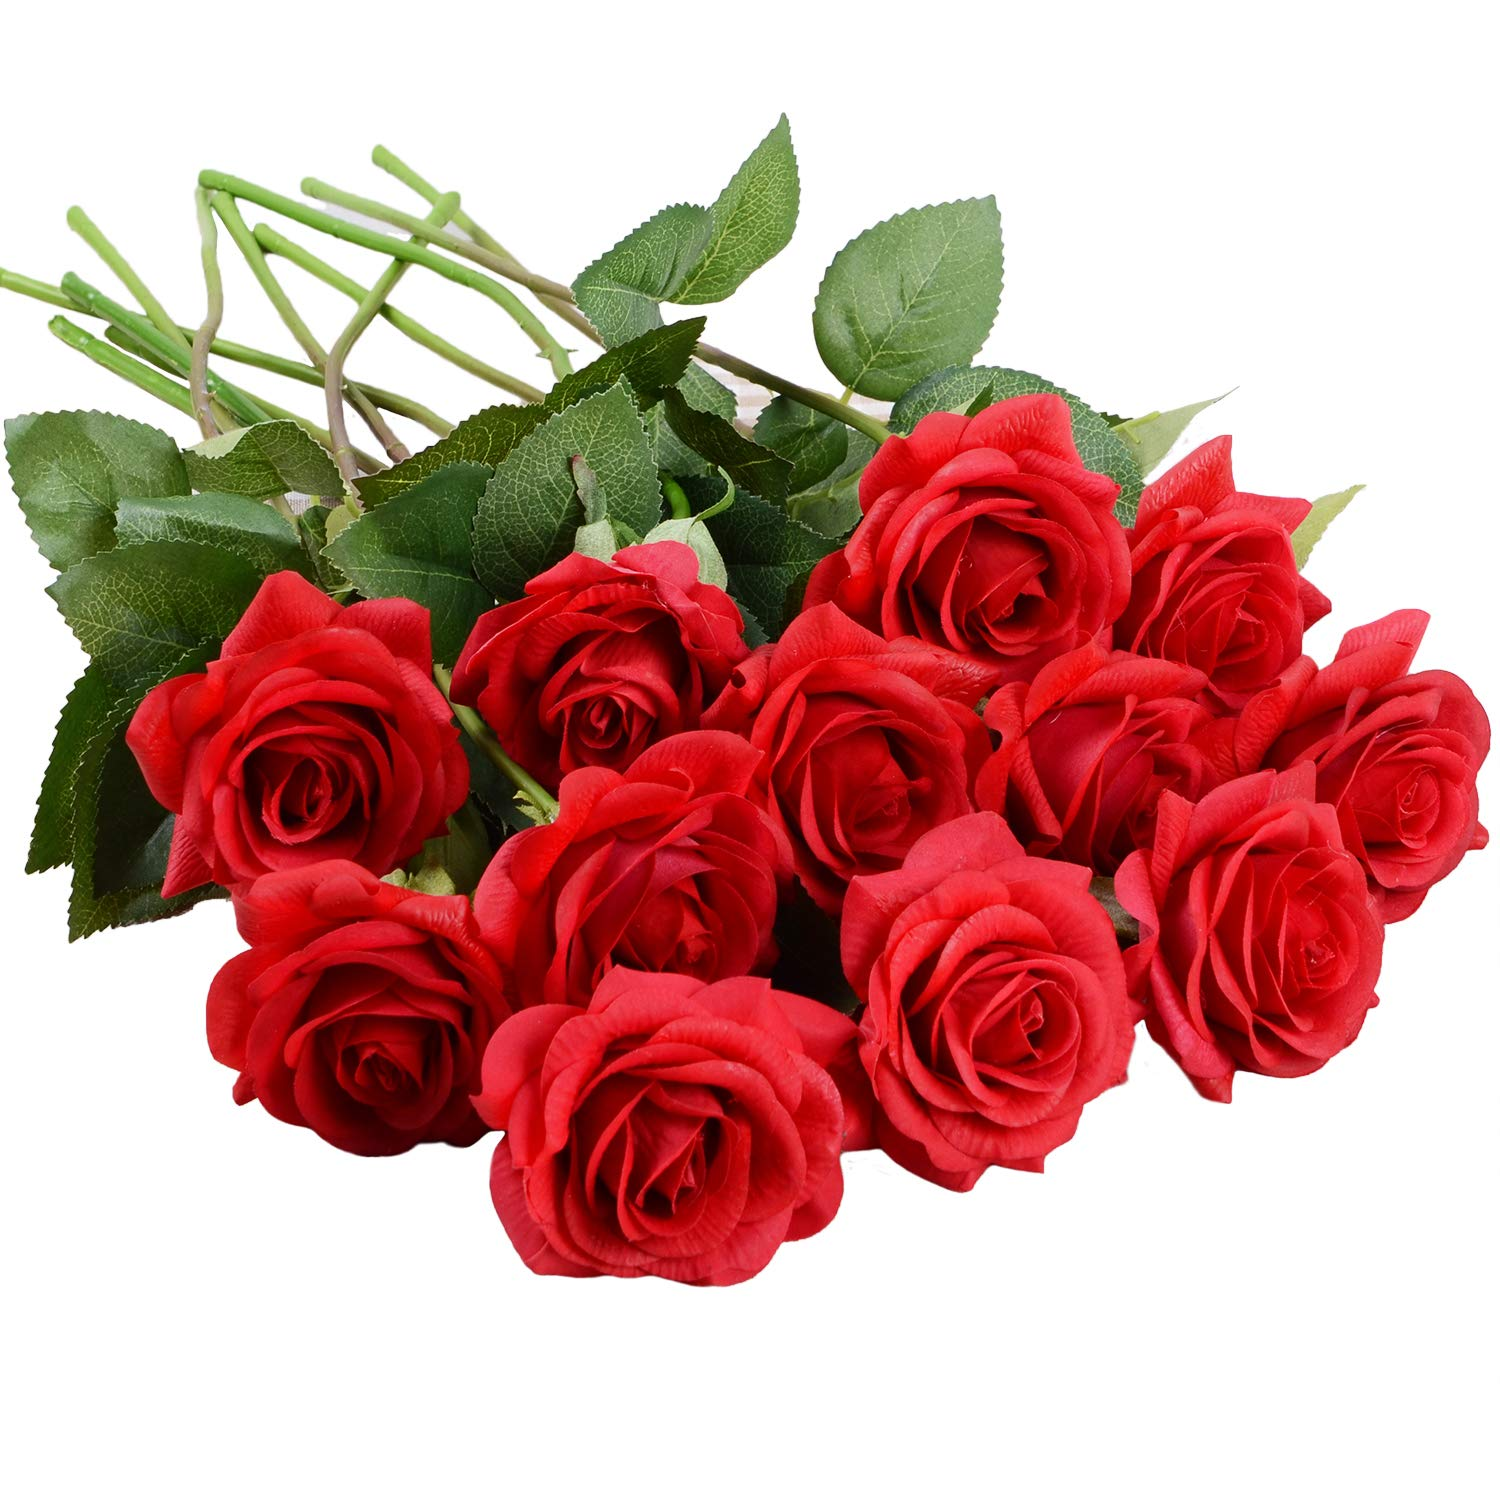 Lvydec-Artificial-Flowers-Silk-Rose-Flowers-12-Pcs-Red-Roses-Fake-Flowers-Real-Touch-Bridal-Wedding-Bouquet-for-Home-Wedding-Decoration-Garden-Party-Floral-Decor